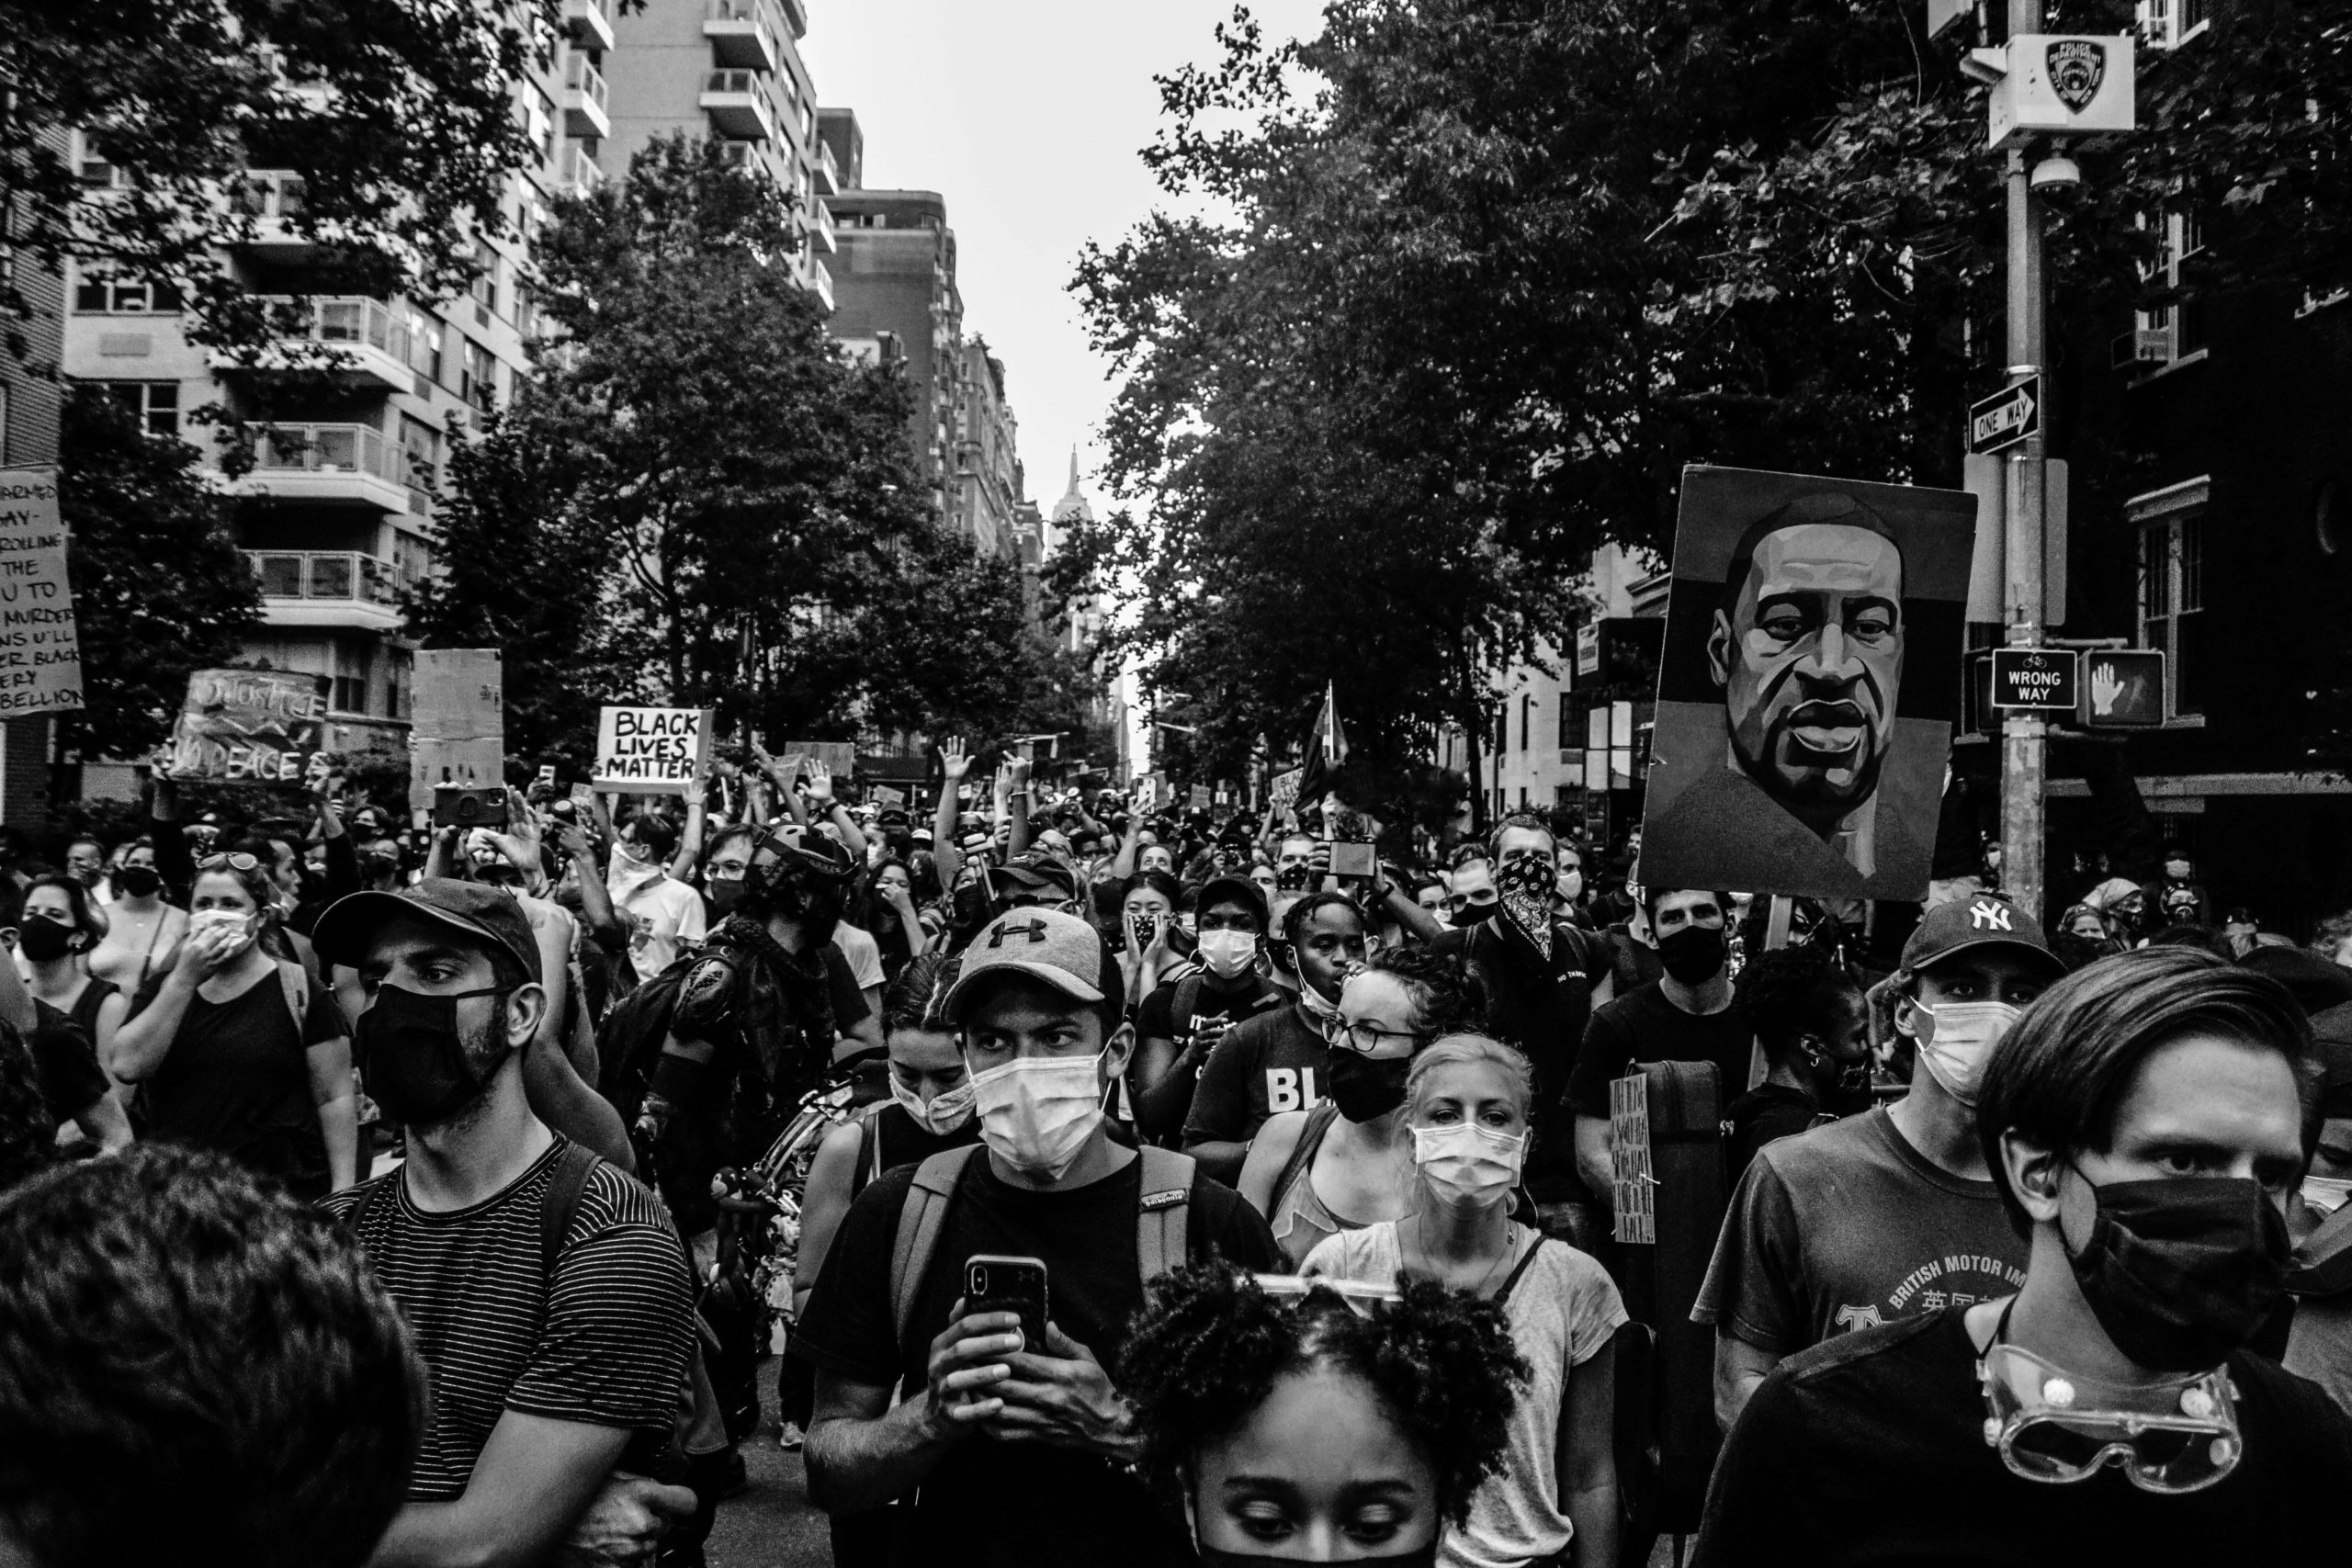 Politics 2020: Protest, Racism, & Policing